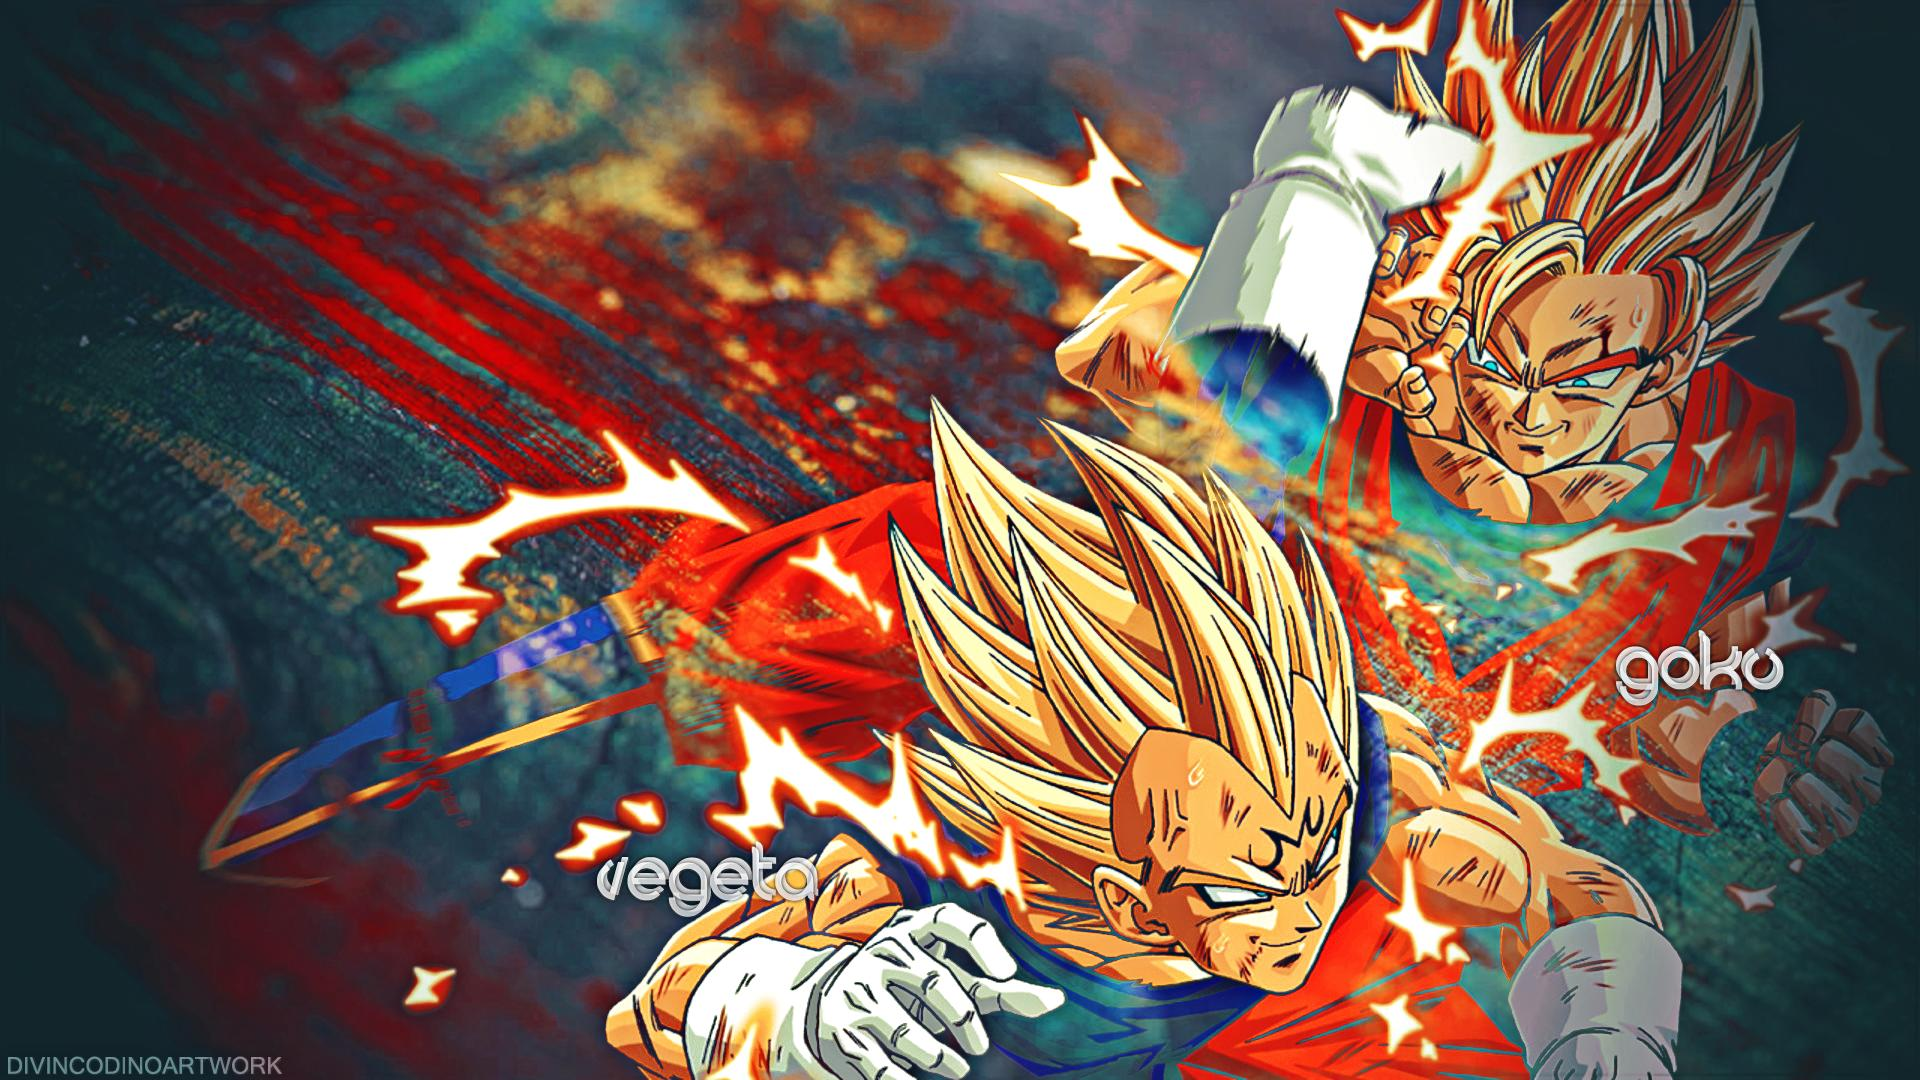 dragonballz wallpapers  Vegeta VS Android   Dragon Ball Z HD Wallpapers  Backgrounds  Wallpaper  1920x1080